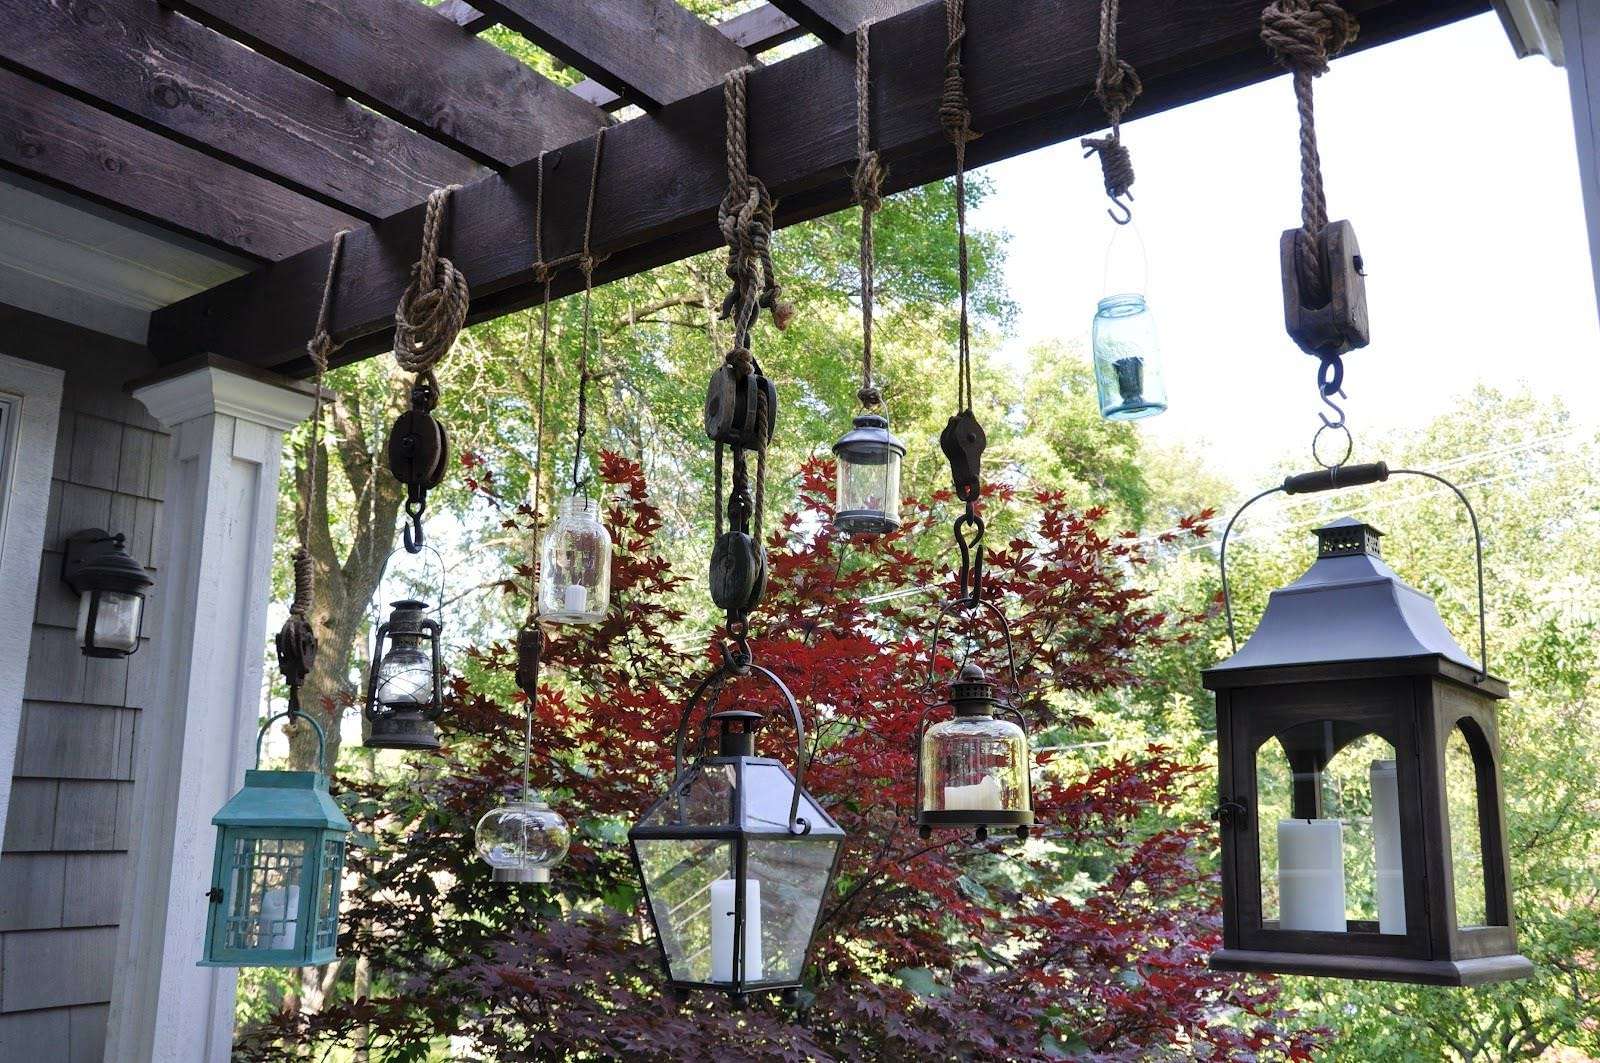 Famous Emejing Hanging Lanterns Indoor Gallery – Decoration Design Ideas Inside Outdoor Hanging Lanterns Candles (View 11 of 20)